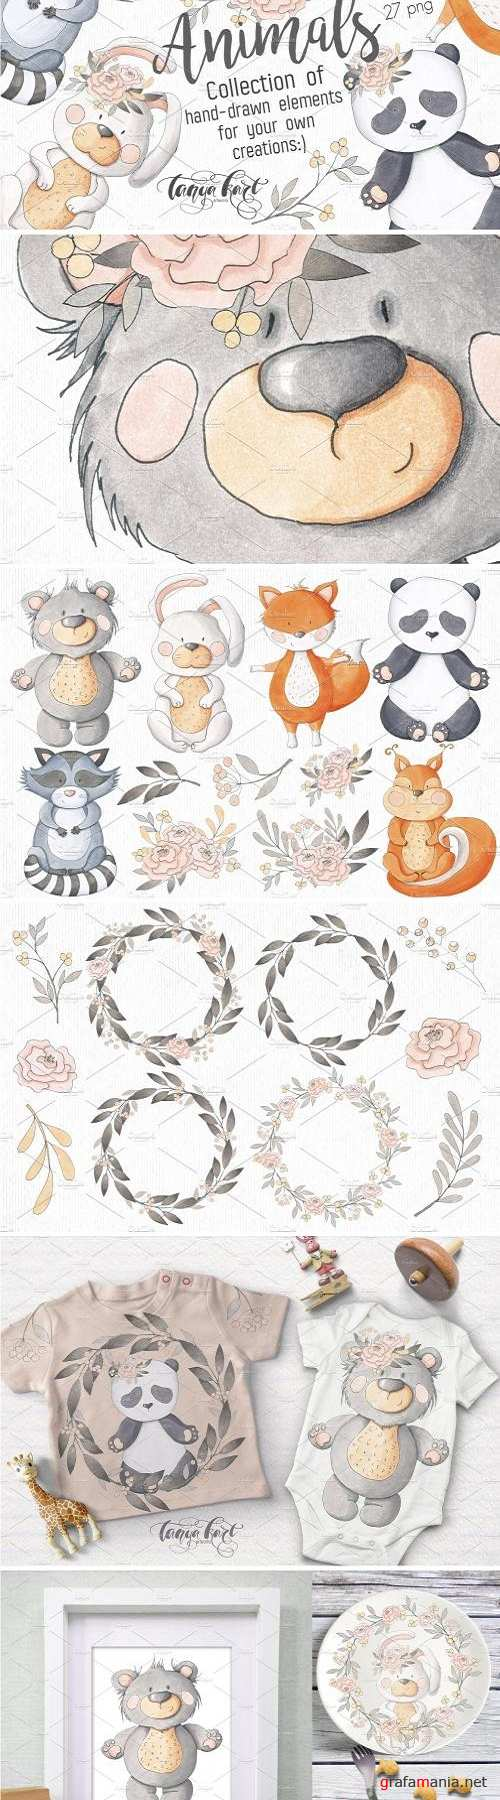 Hand Drawn Animals Collection - 2422305